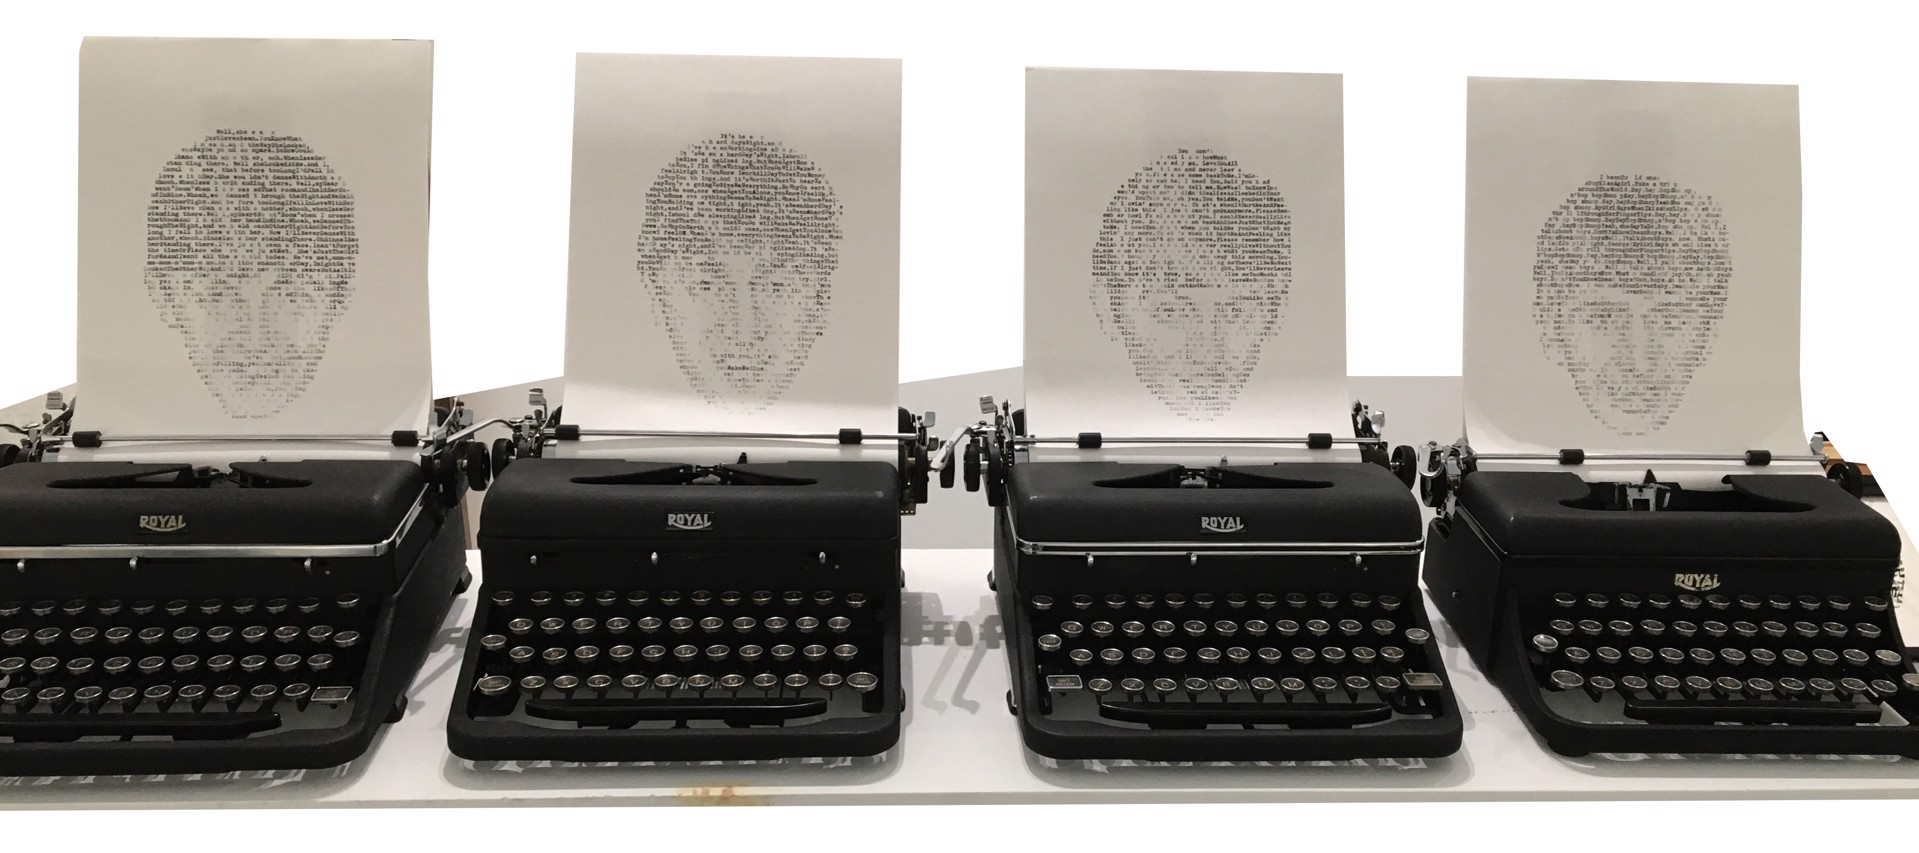 Beatles & Typewriters (Text: 8 Songs by The Beatles) by David Hollier